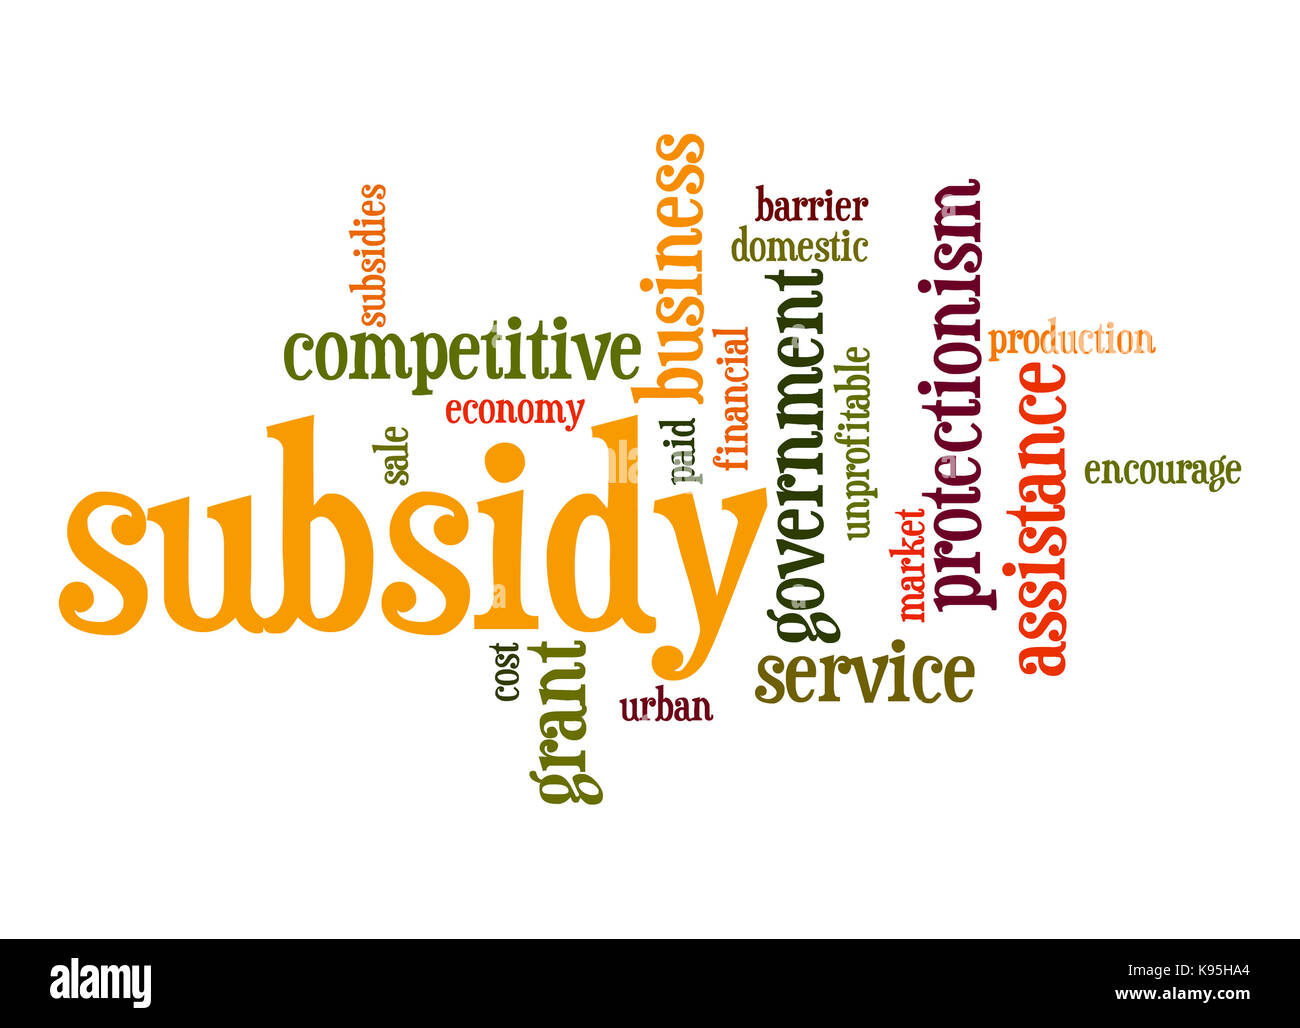 Subsidy word cloud - Stock Image